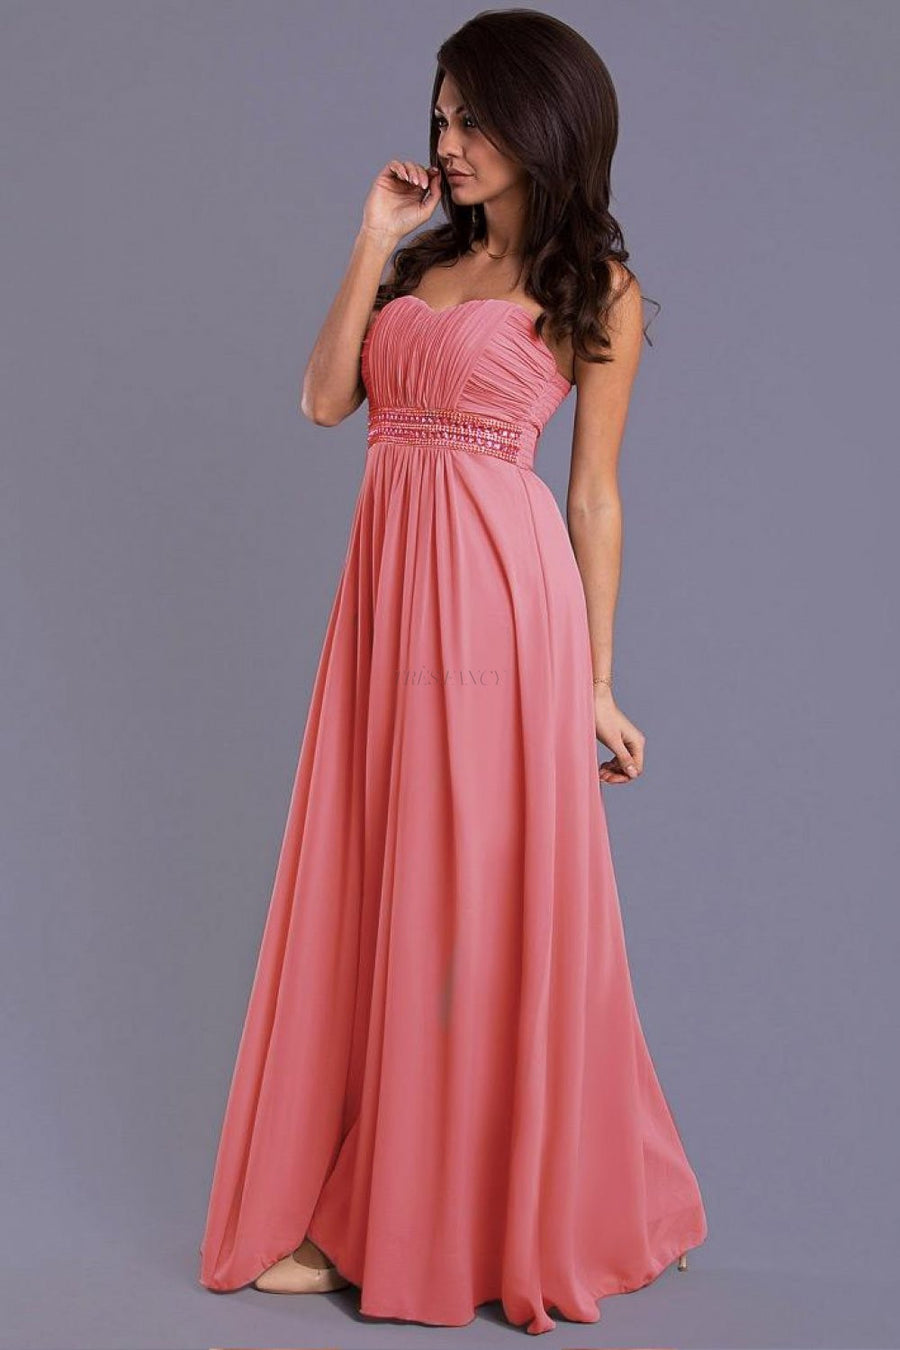 Evening dress 38429 YourNewStyle-Evening Dresses-YourNewStyle-pink-M-Très Fancy